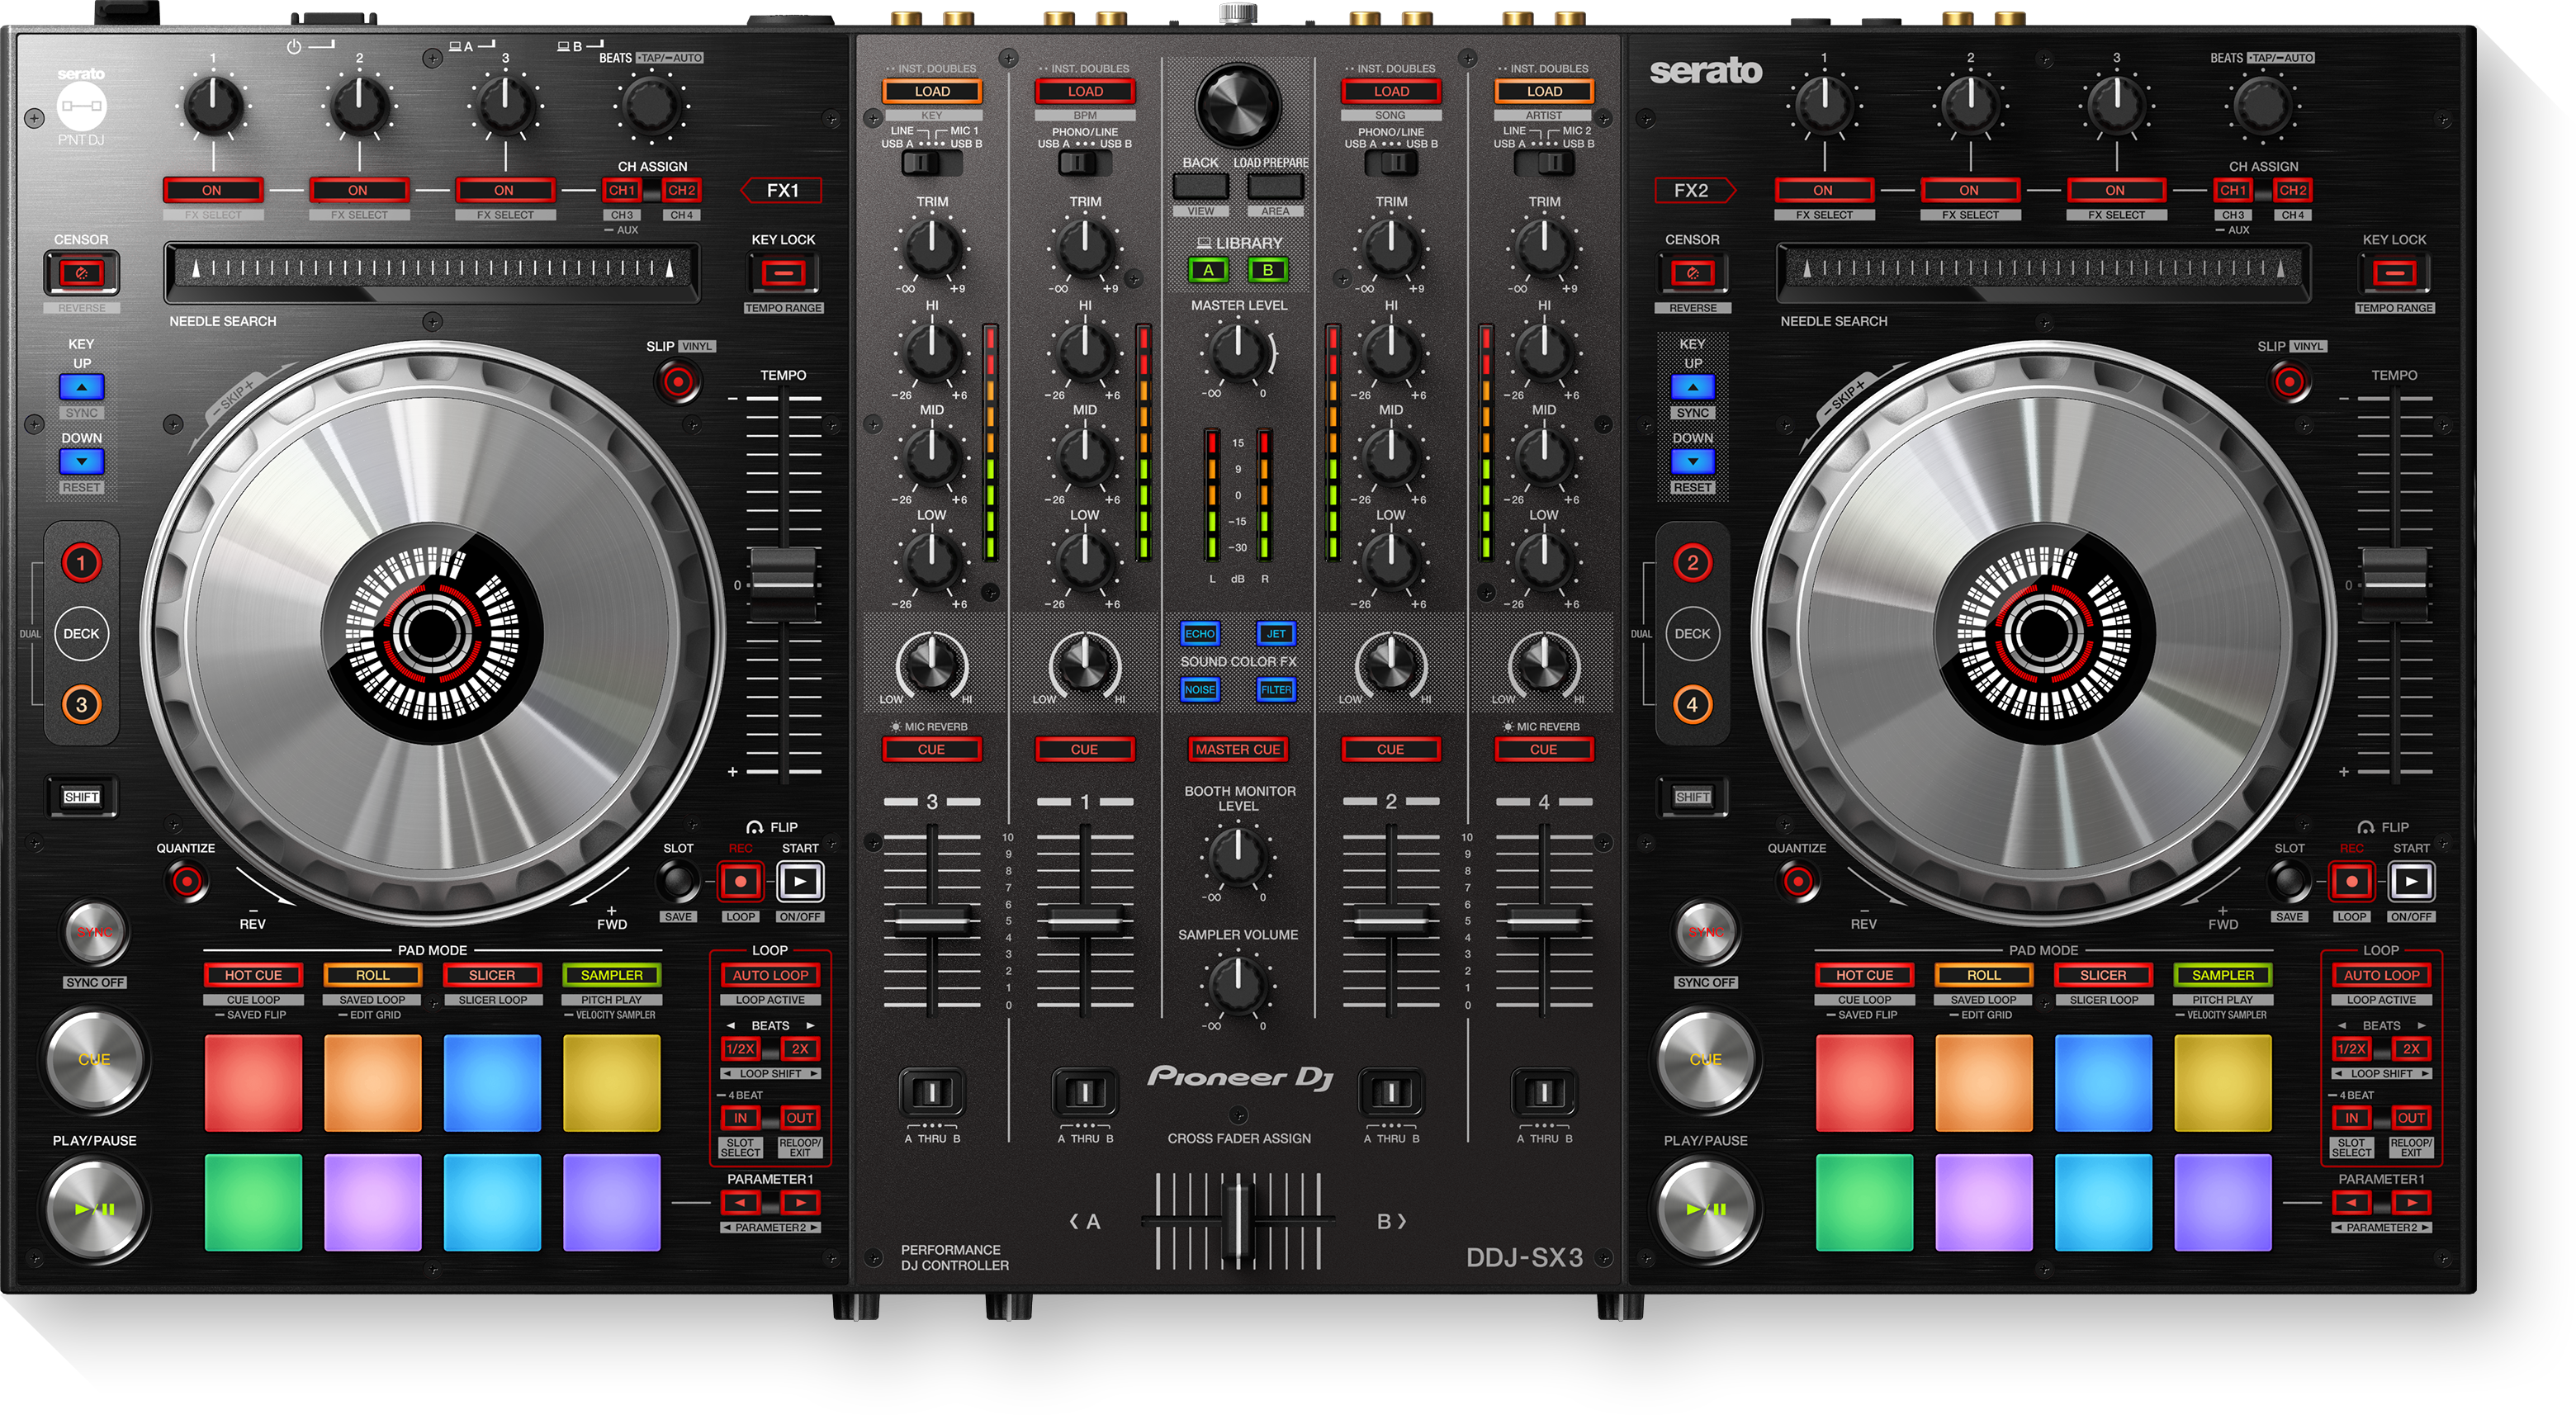 Download firmware or software for DDJ-SX3 - Pioneer DJ - Global